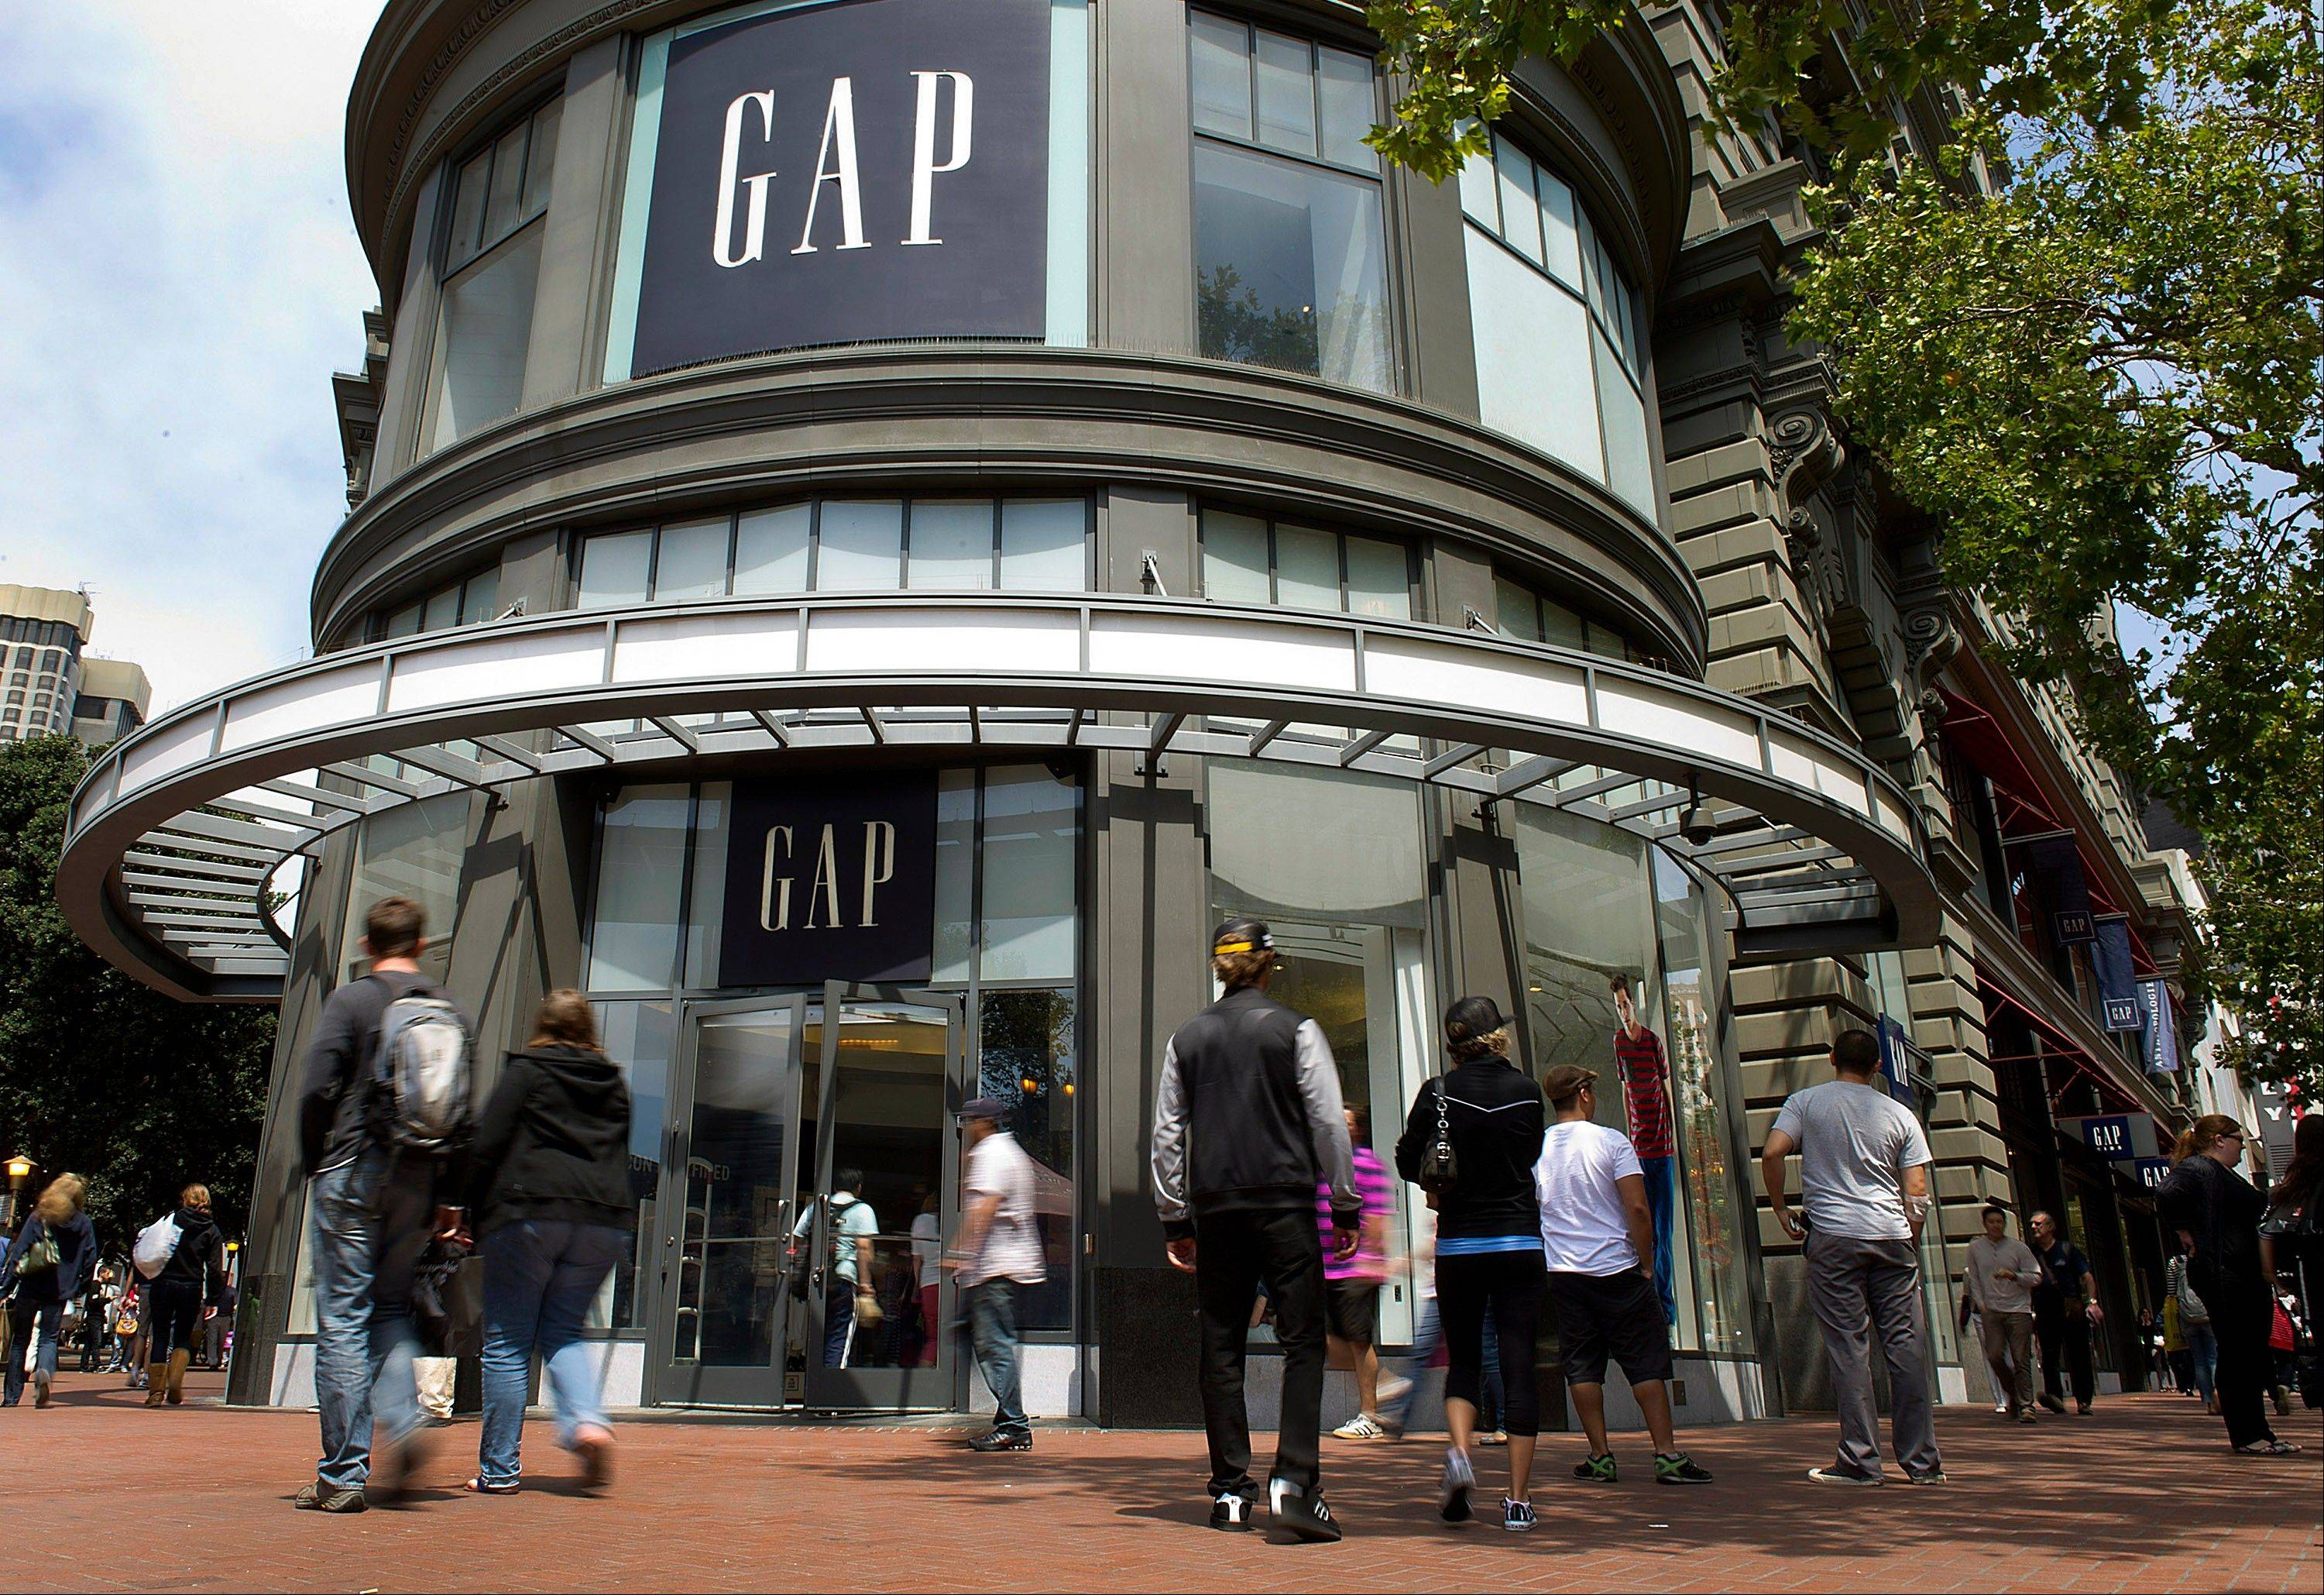 Gap Inc. reported a 29 percent increase in second-quarter net income, evidence the fashion retailer's moves to liven up its clothing with brightly colored trendy looks are winning over shoppers.